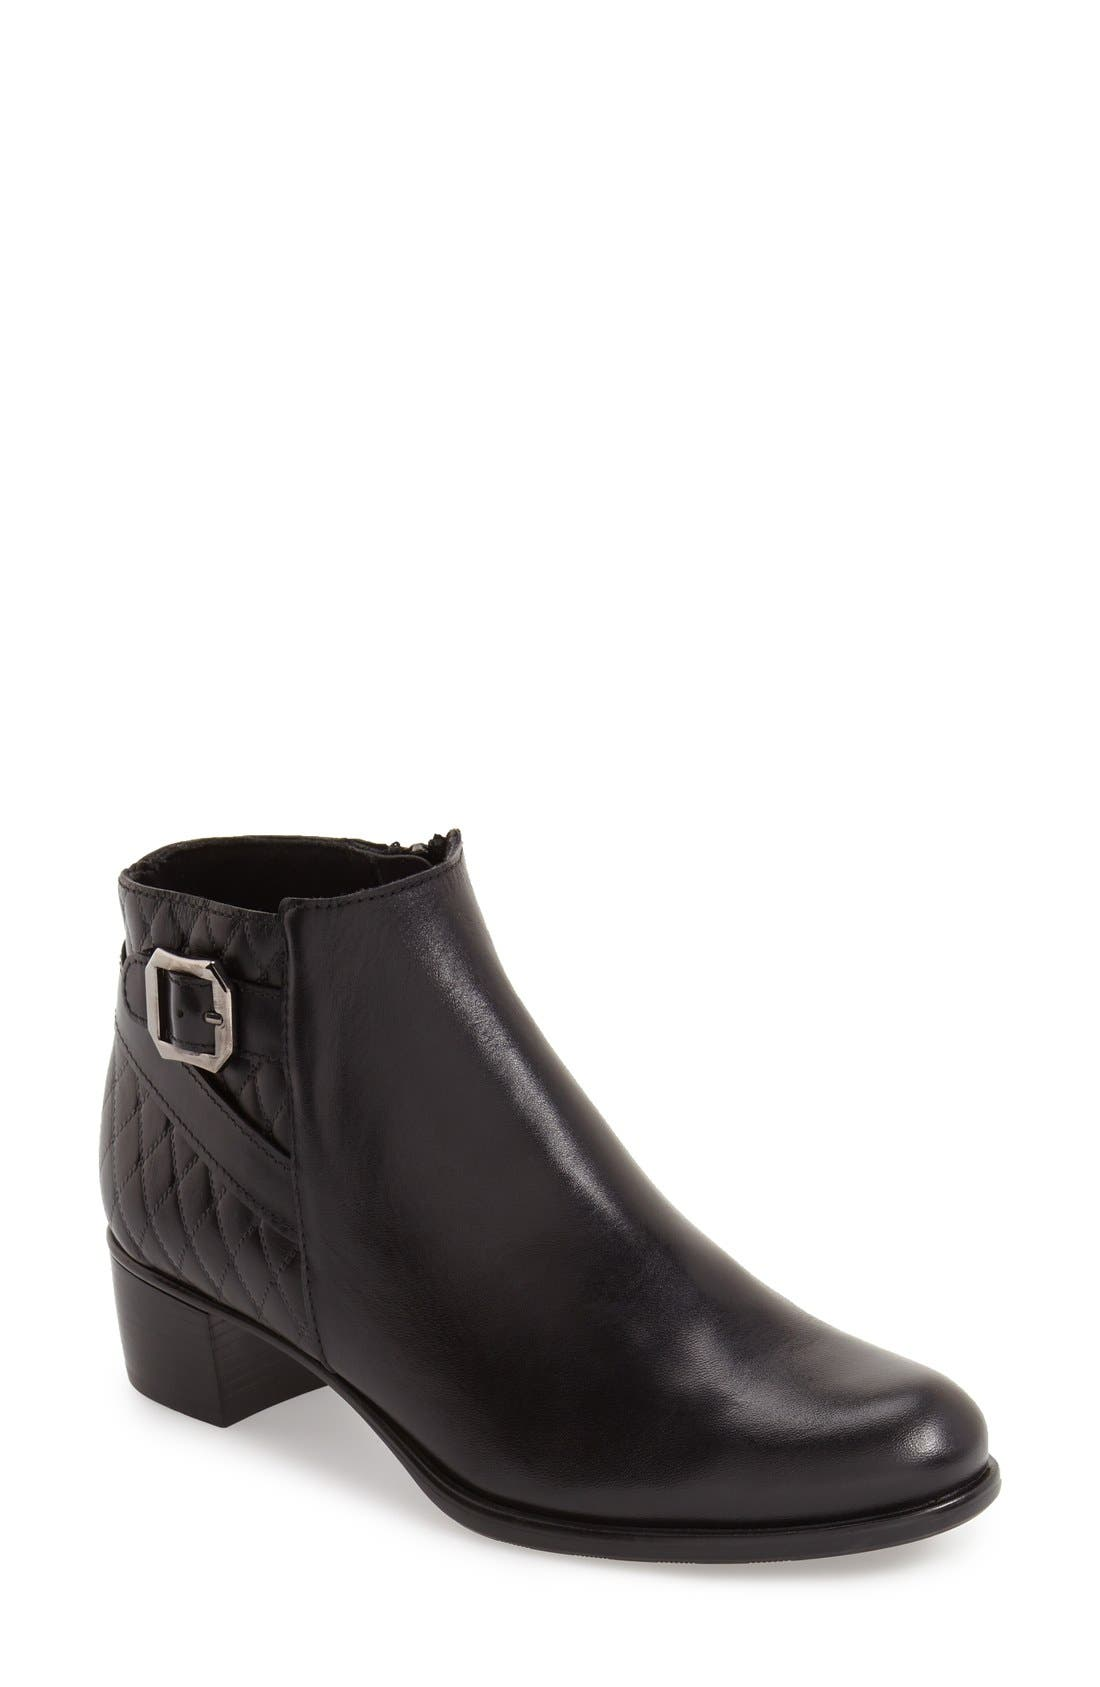 'Jolynn' Bootie,                             Main thumbnail 1, color,                             Black Quilted Leather